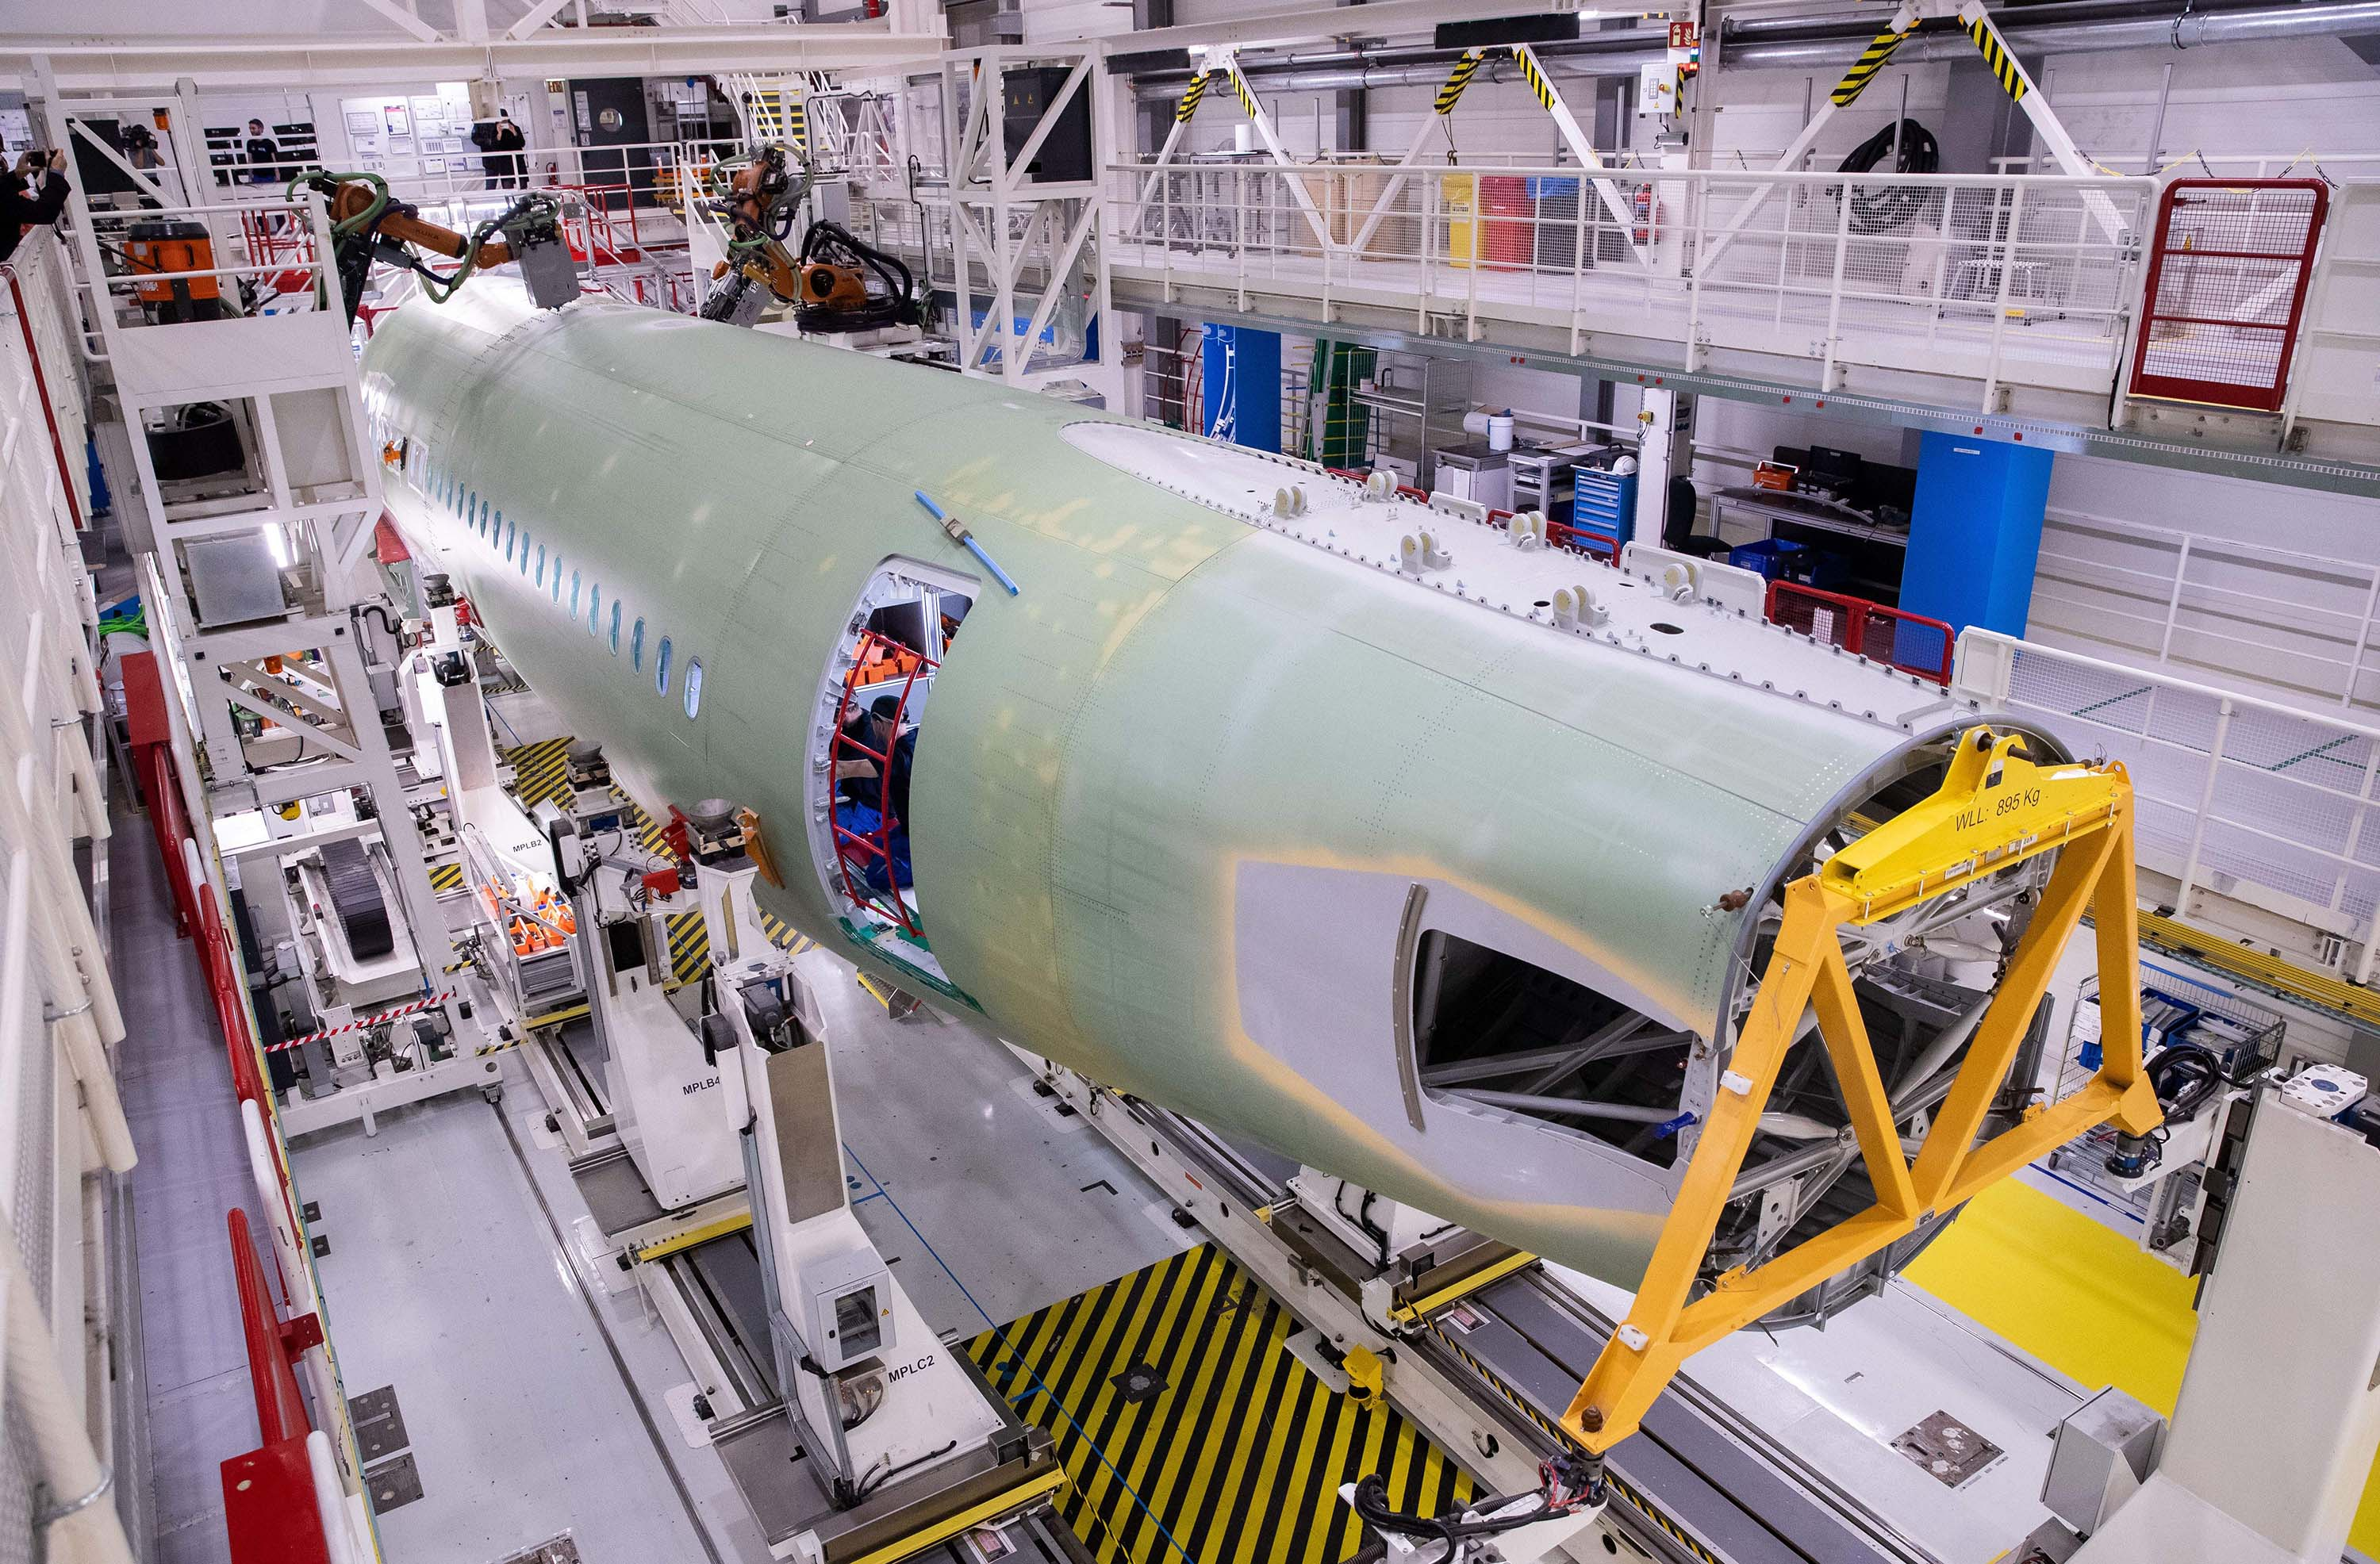 Airbus technicians work on parts for an Airbus A320 at the company's Finkenwerder plant in Hamburg, Germany, in October 2019.